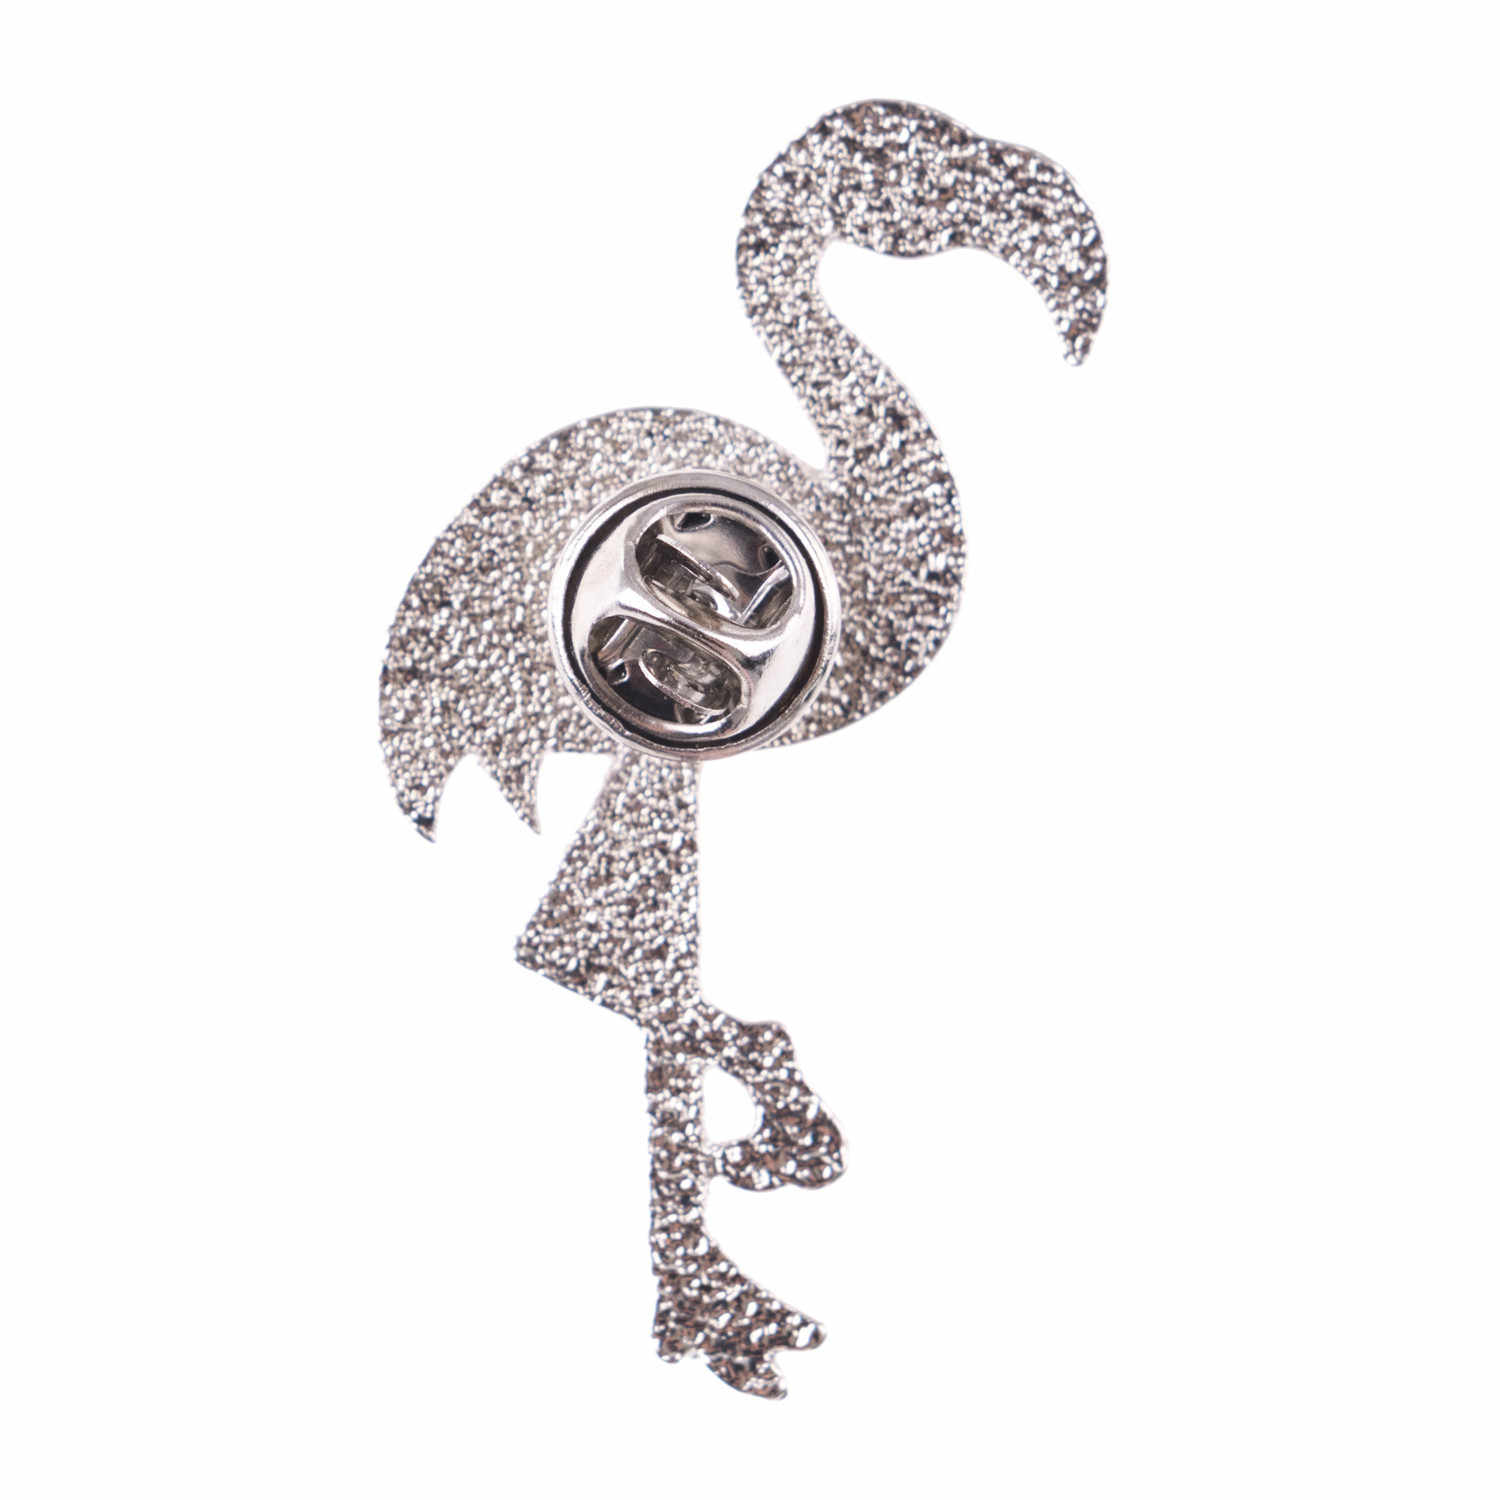 Flamingo Icons Brooches For Women New Fashion Badge 3D Print Jewelry Brooches Shaped Pin Badges Backpack Decoration